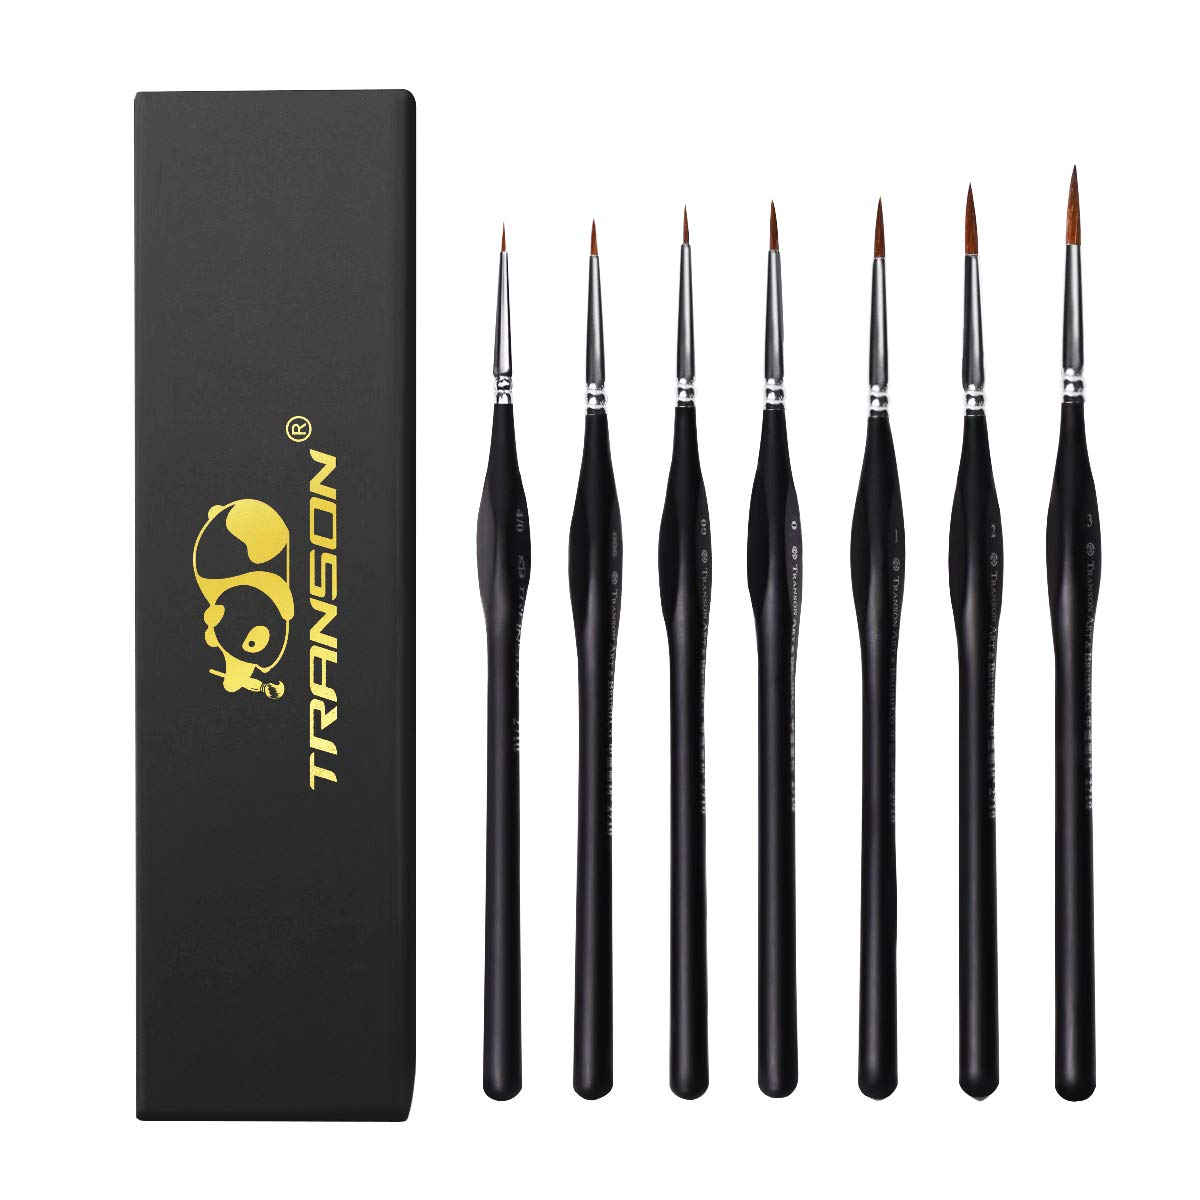 Transon Detail Paint Brush Set 7 Sizes Weasel Hair with Triangular Handle for Miniatures, Acrylic, Gouache, Watercolor, Oil, Models by Transon